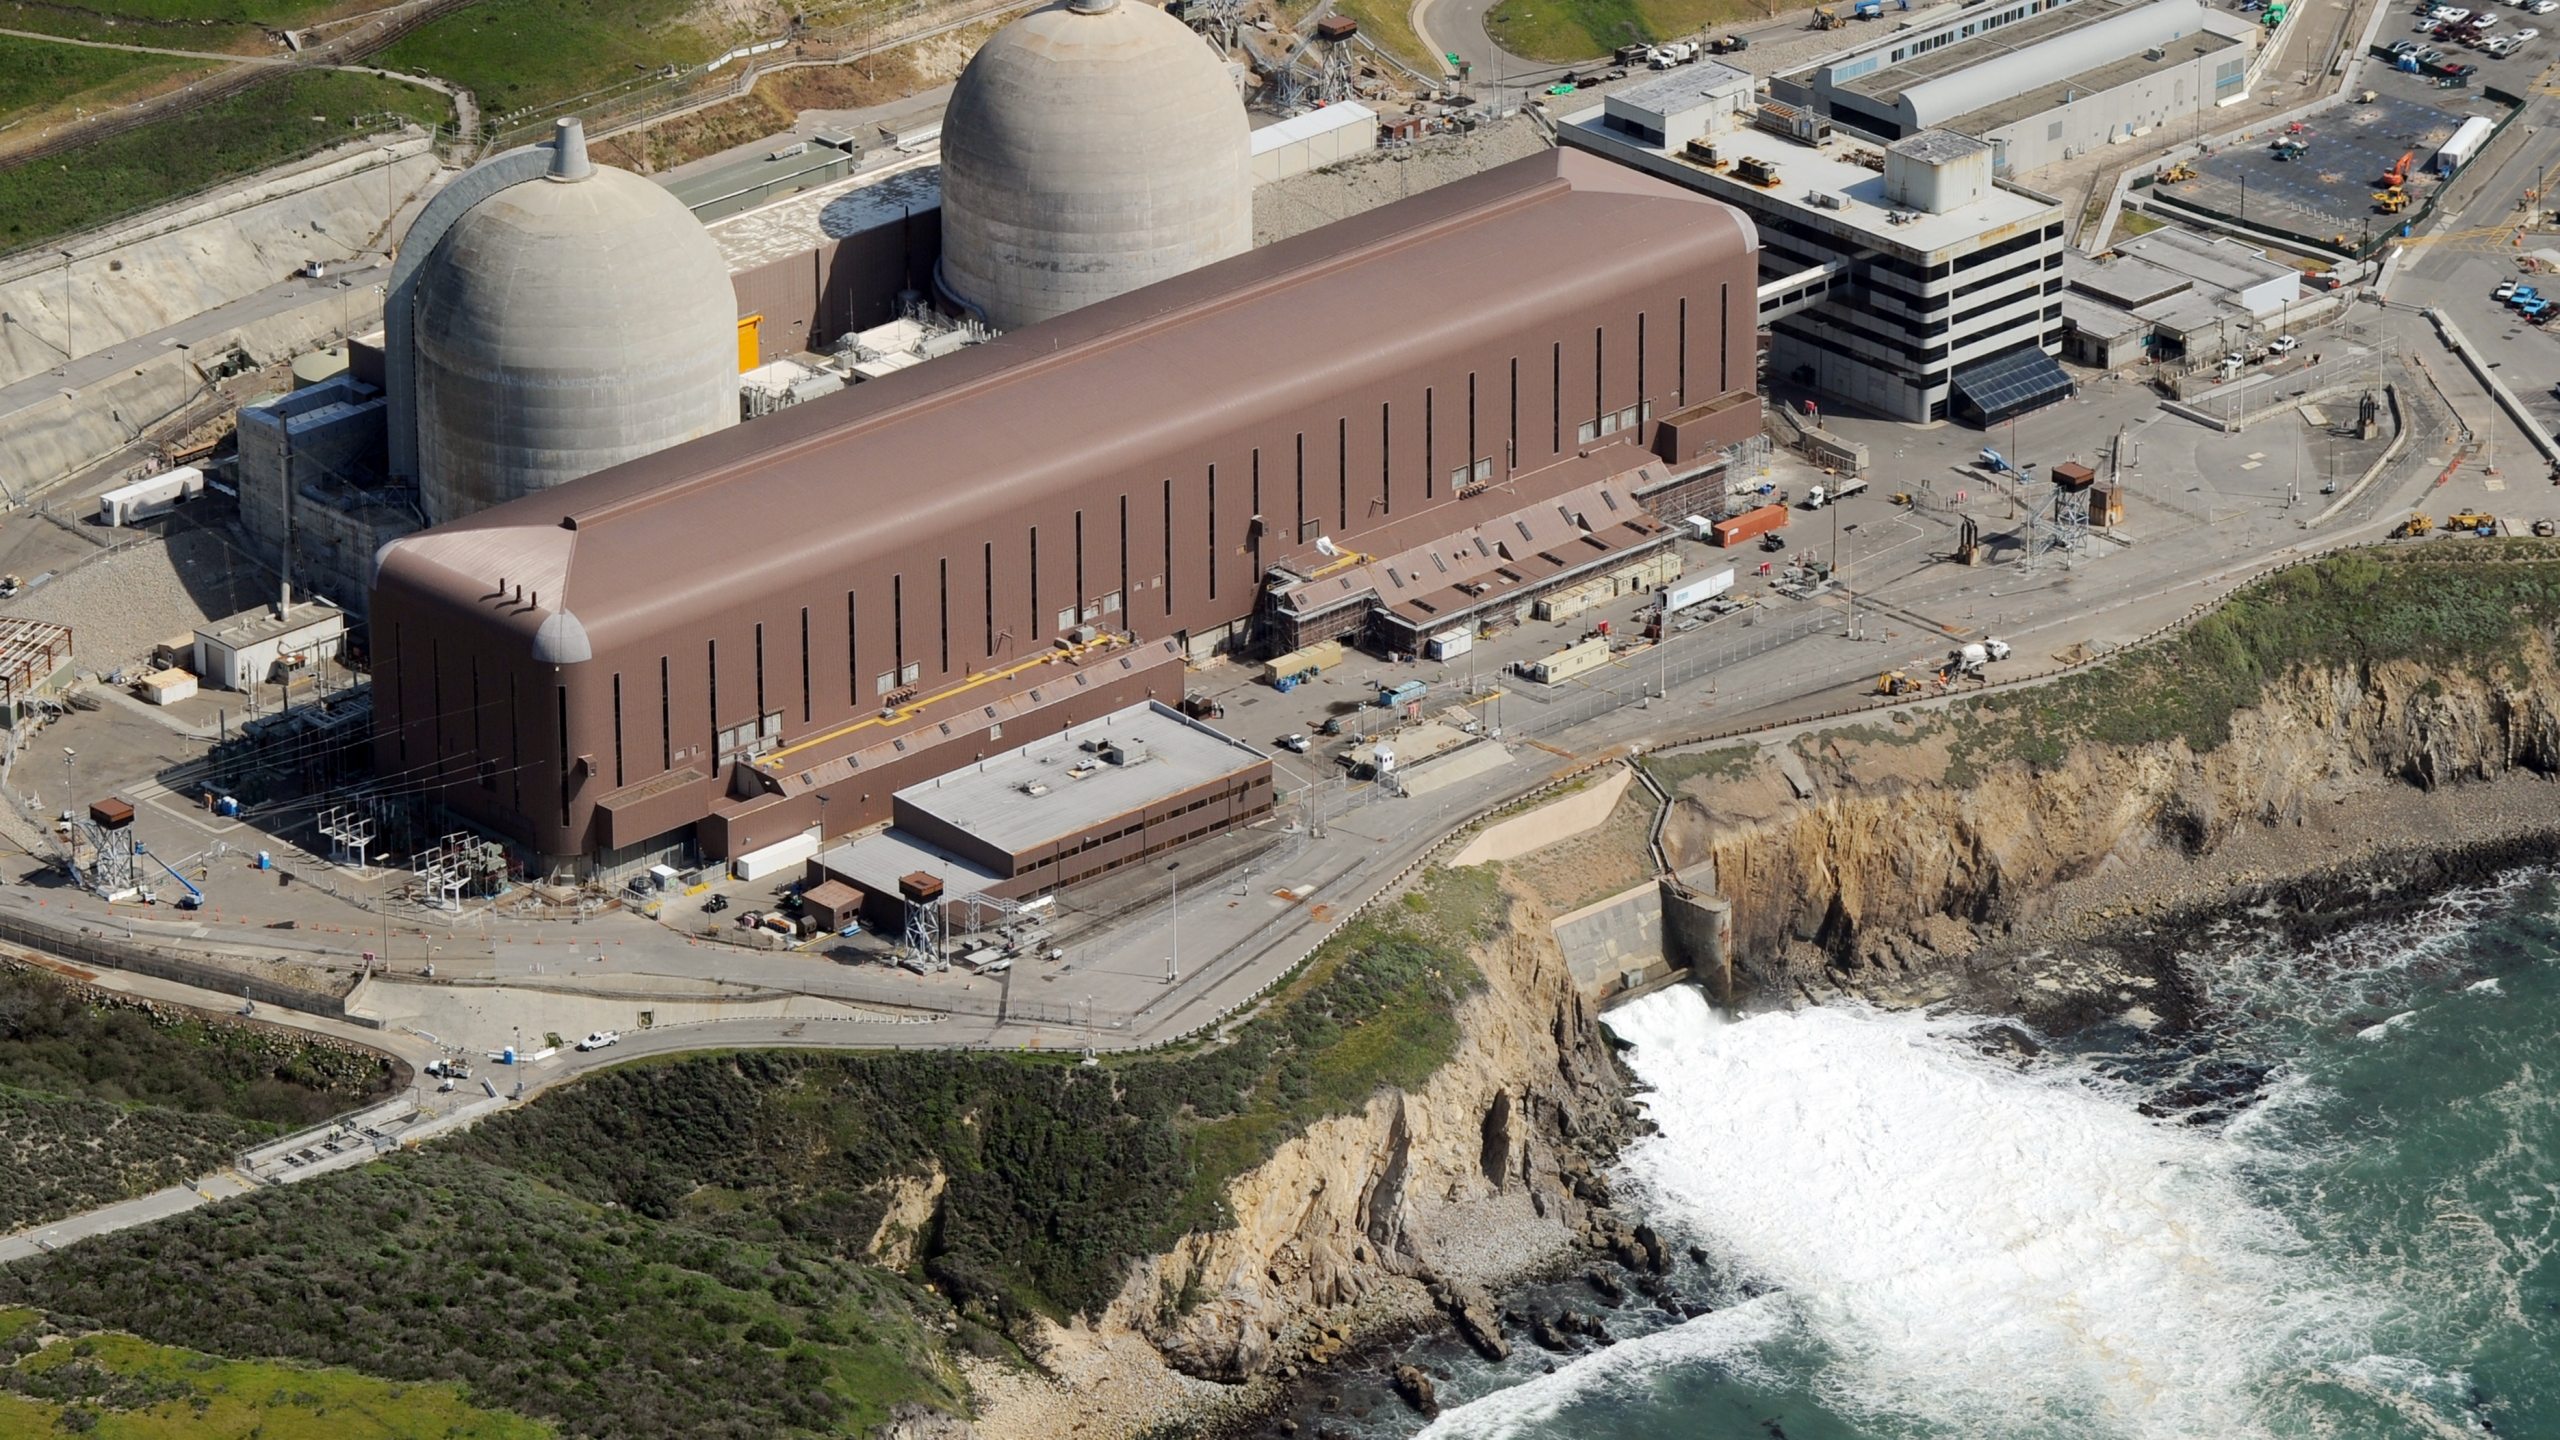 Aerial view of the Diablo Canyon Nuclear Power Plant which sits on the edge of the Pacific Ocean at Avila Beach in San Luis Obispo County, California on March 17, 2011. (Credit: MARK RALSTON/AFP/Getty Images)